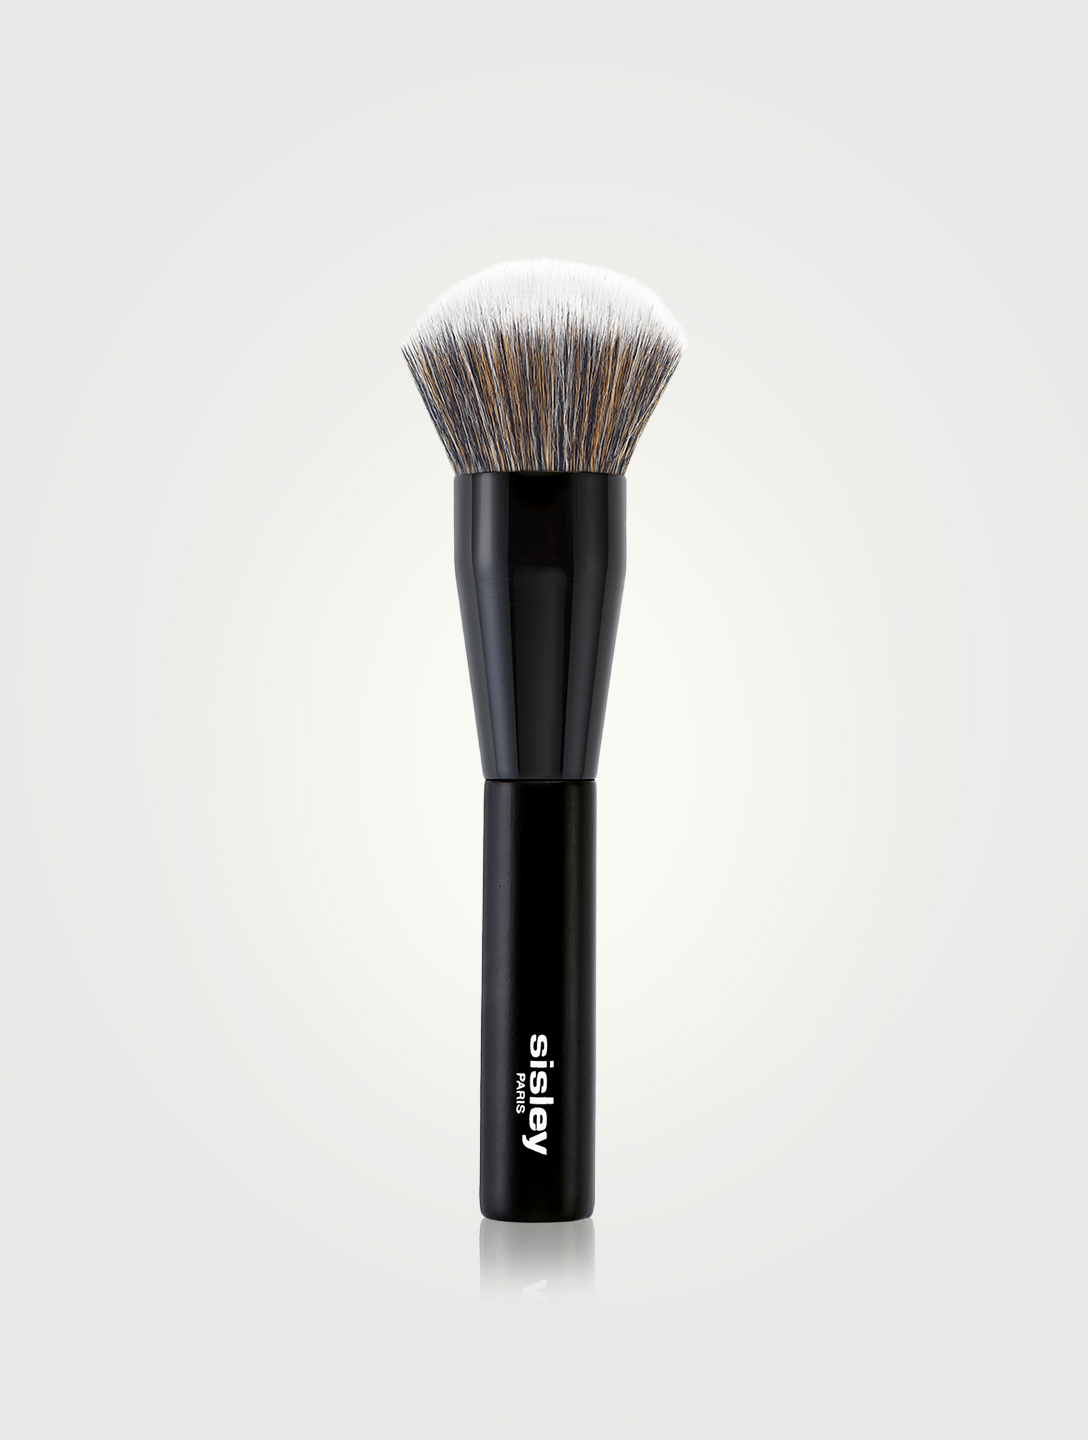 SISLEY-PARIS Powder Brush Beauty